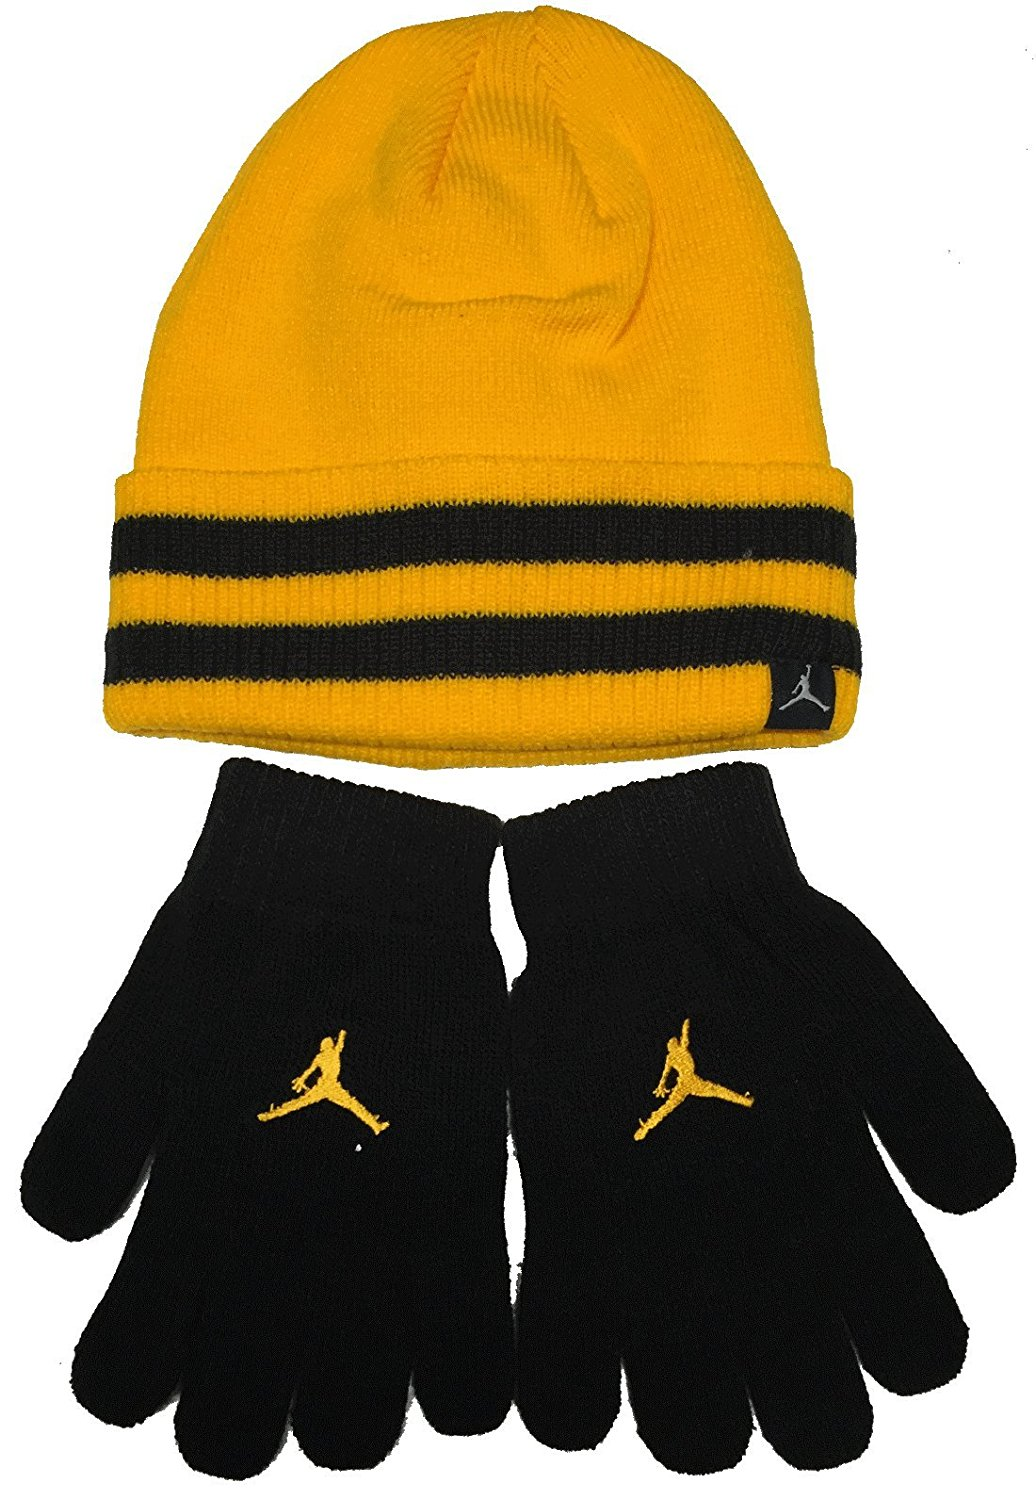 1d9991b5642f Get Quotations · Youth 8 - 20 Nike Jordan Beanie Hat and Gloves Set Boys  Black- Vivid Red